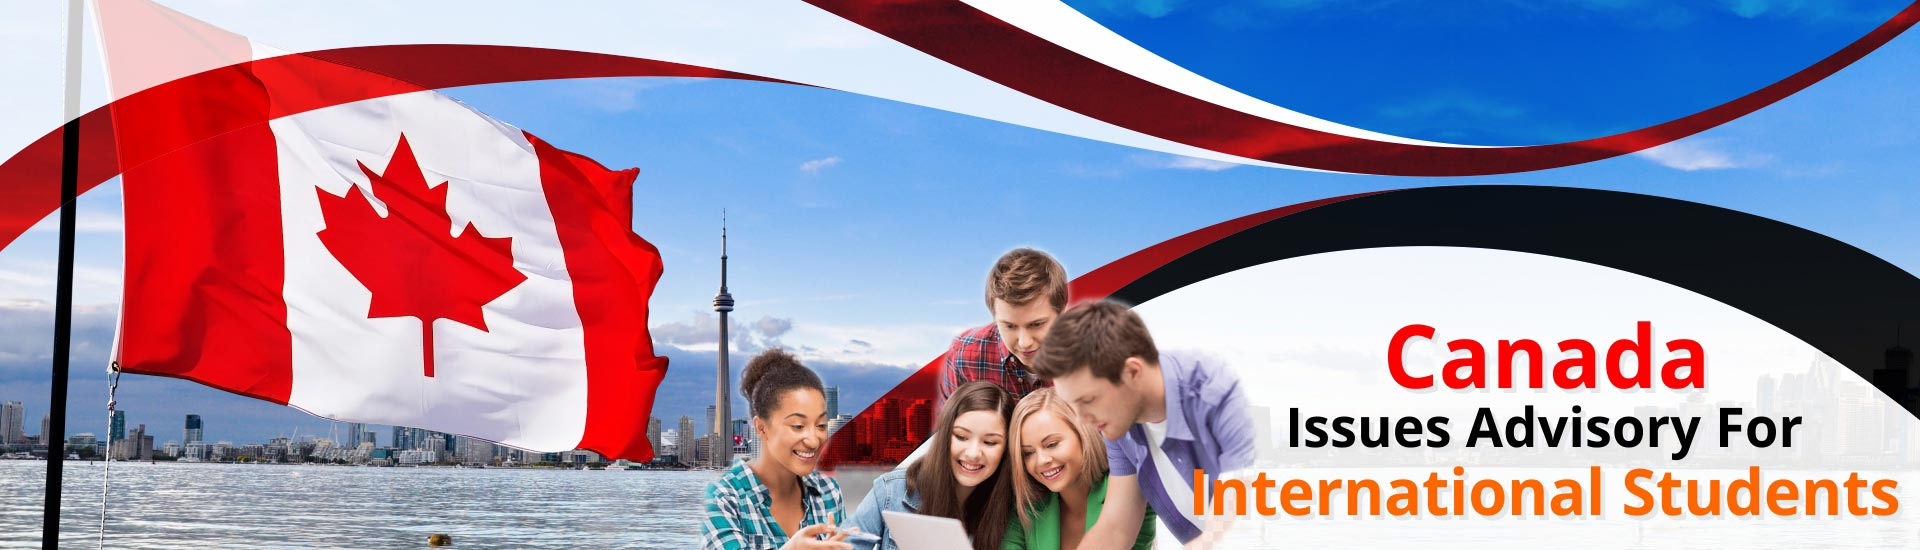 Canada issues advisory for international students